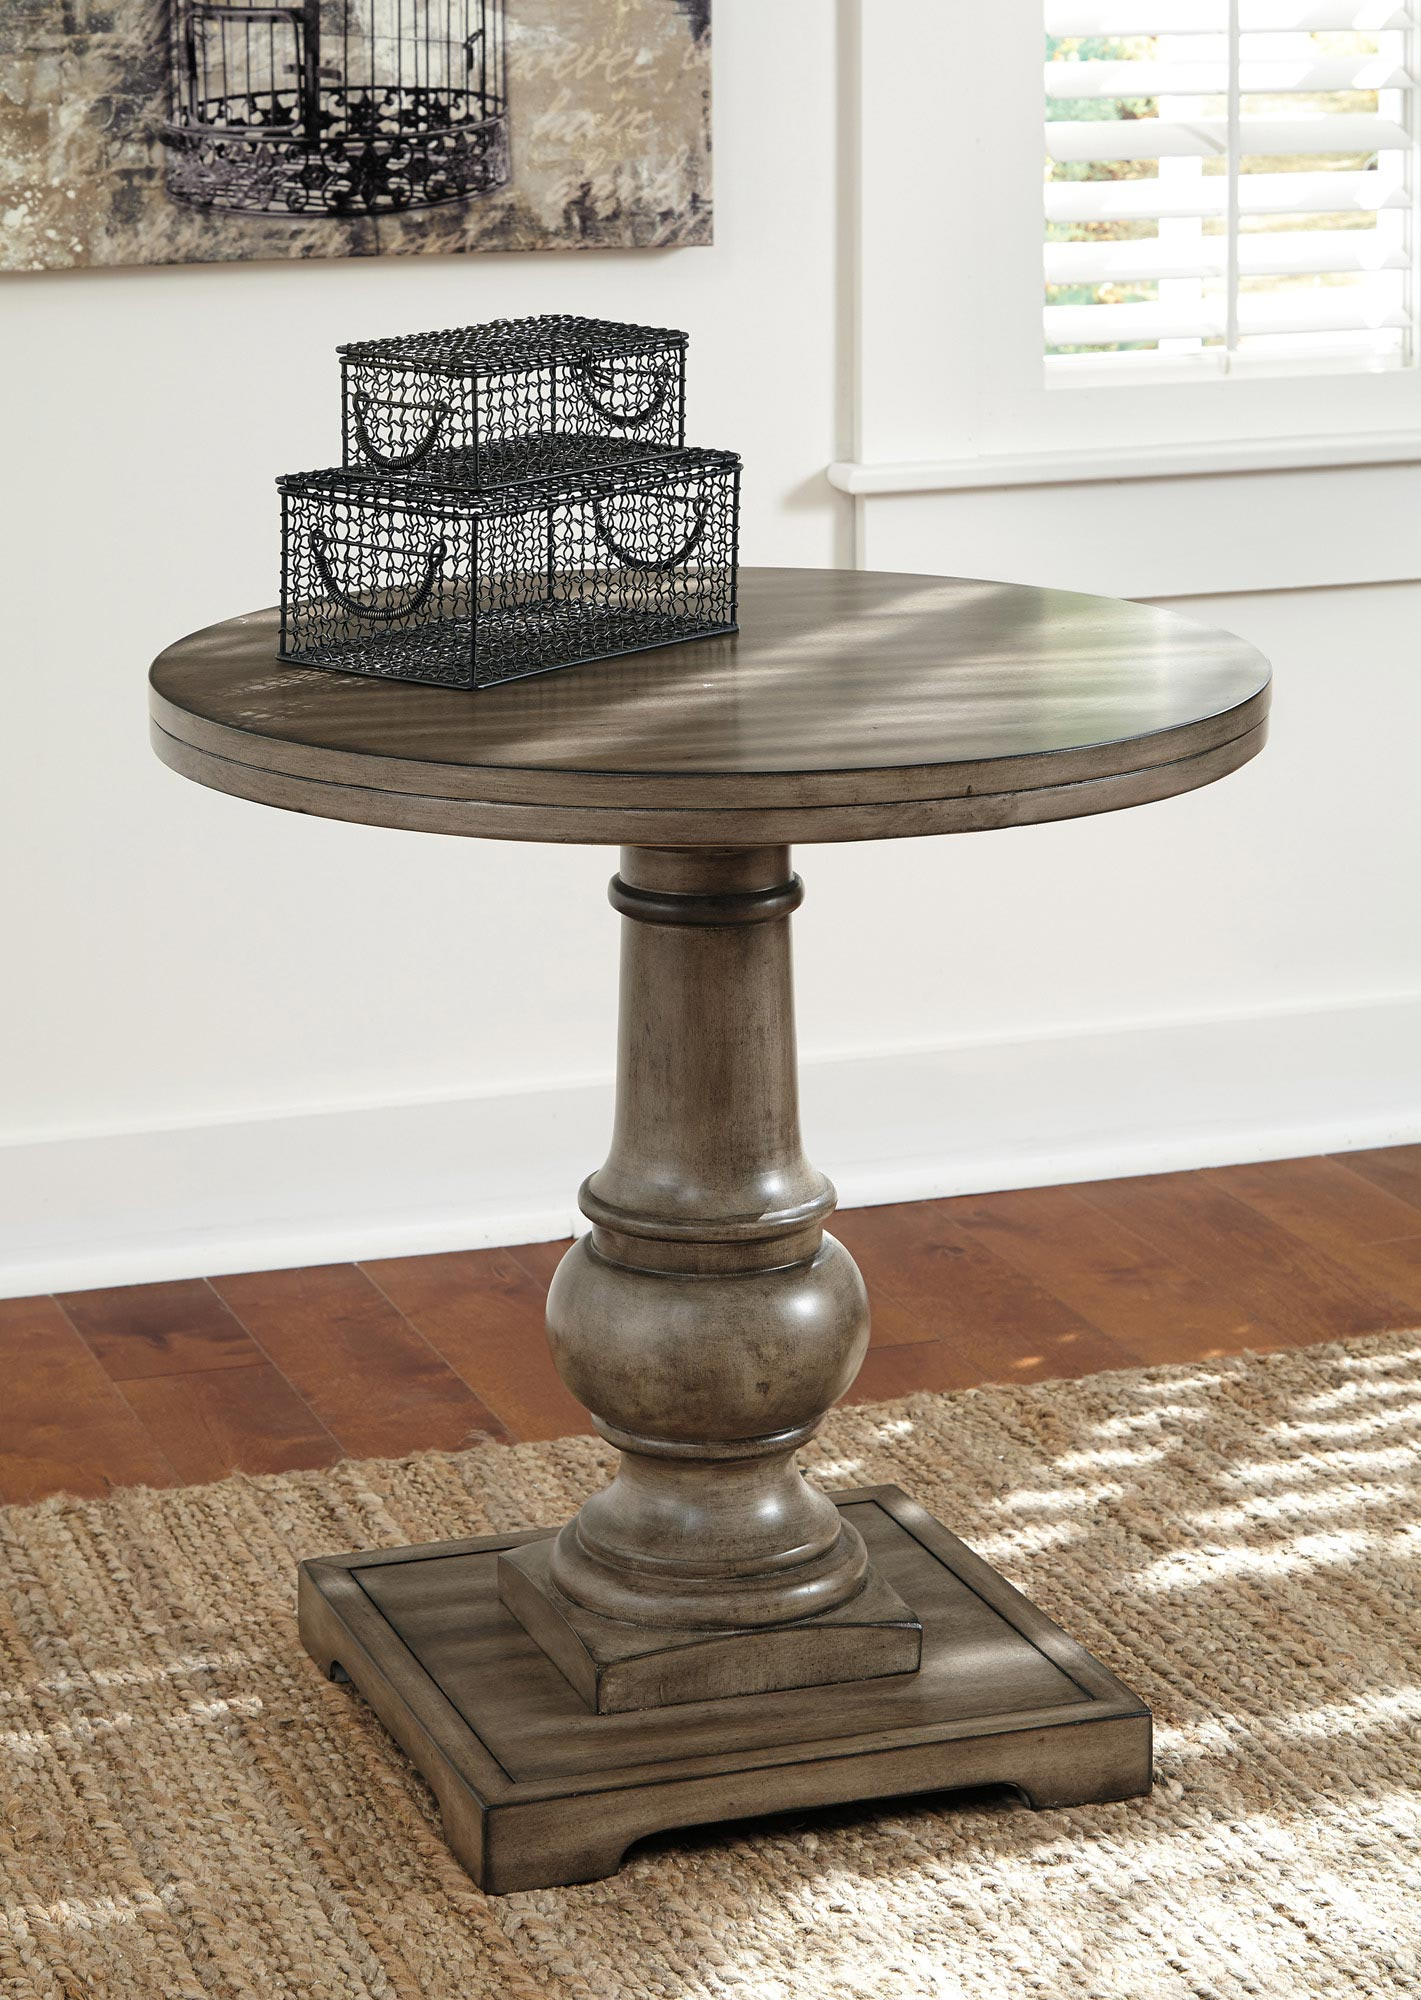 Best Rustic Accents Round End Table Ashley Home Gallery 640 x 480